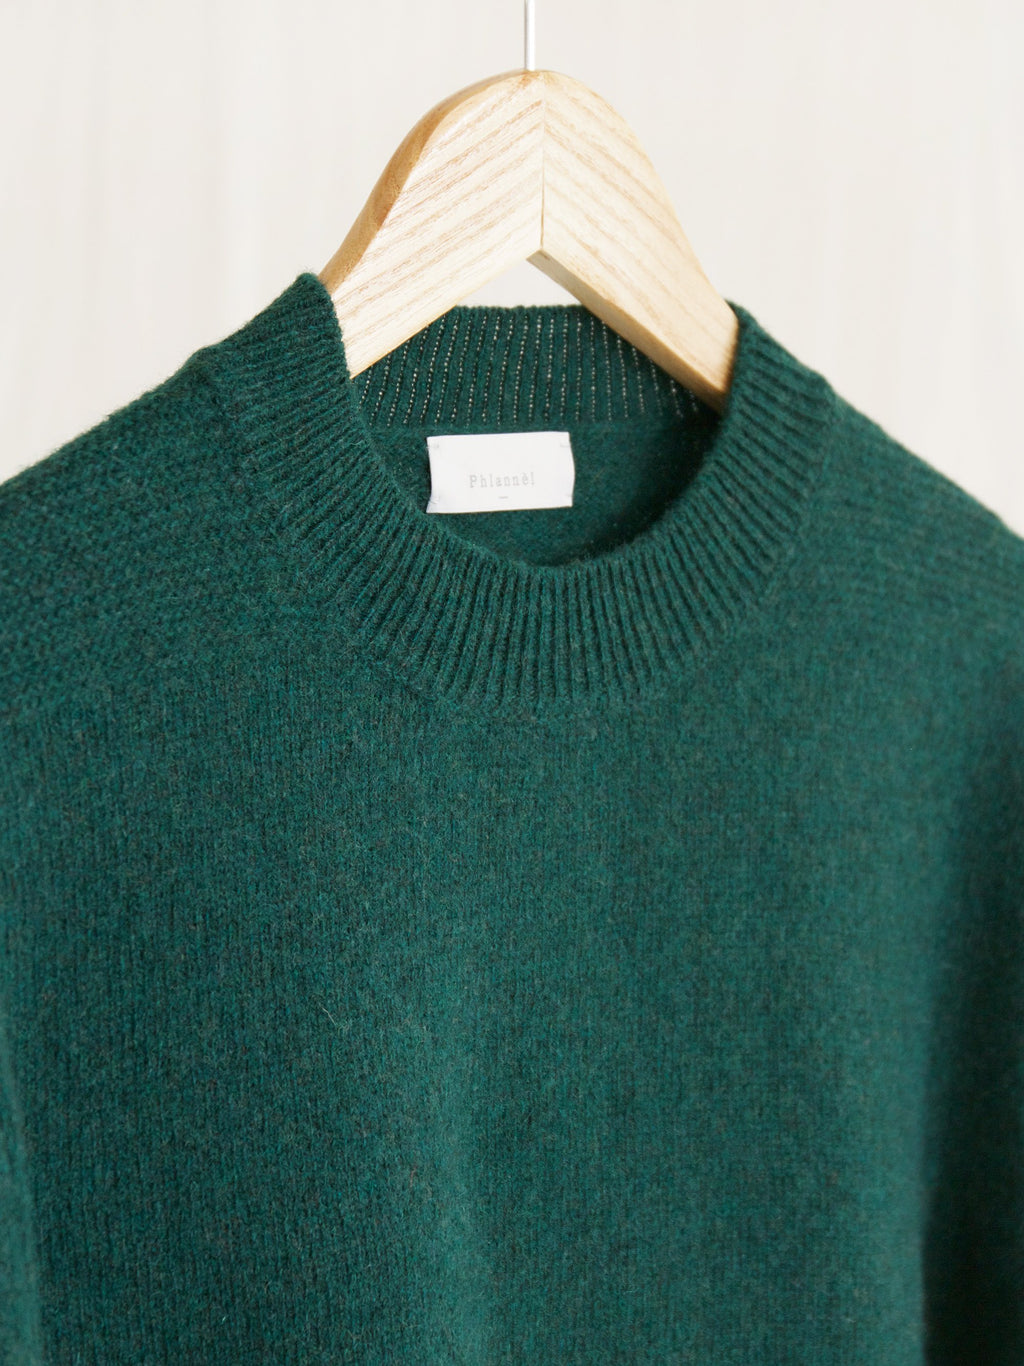 Namu Shop - Phlannel Shetland Wool Crewneck Sweater - Bottle Green (Men's)